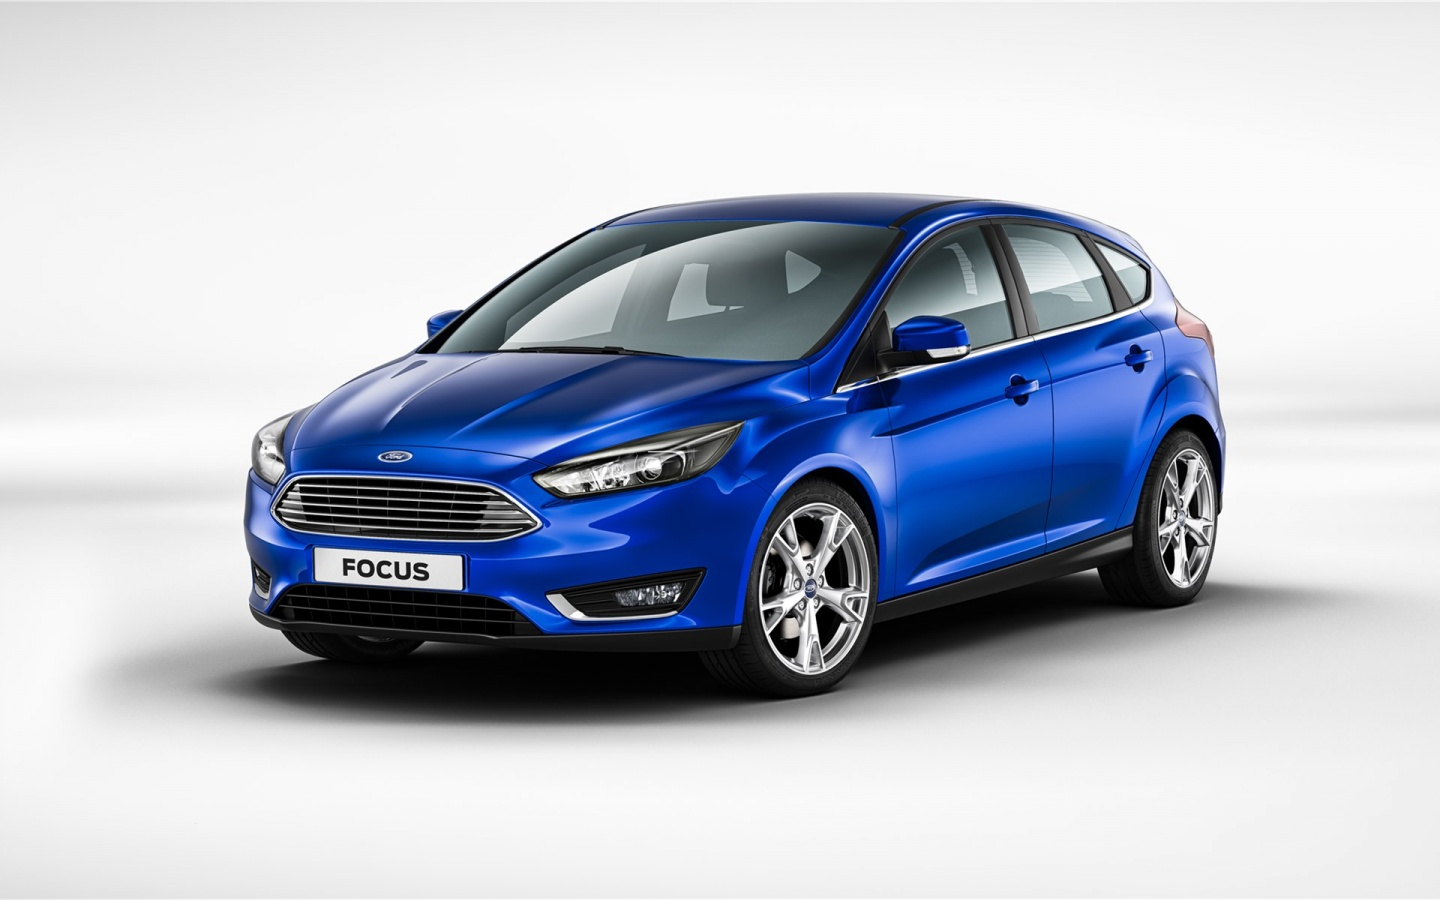 2015 Ford Focus Wallpaper HD Car Wallpapers 1440x900